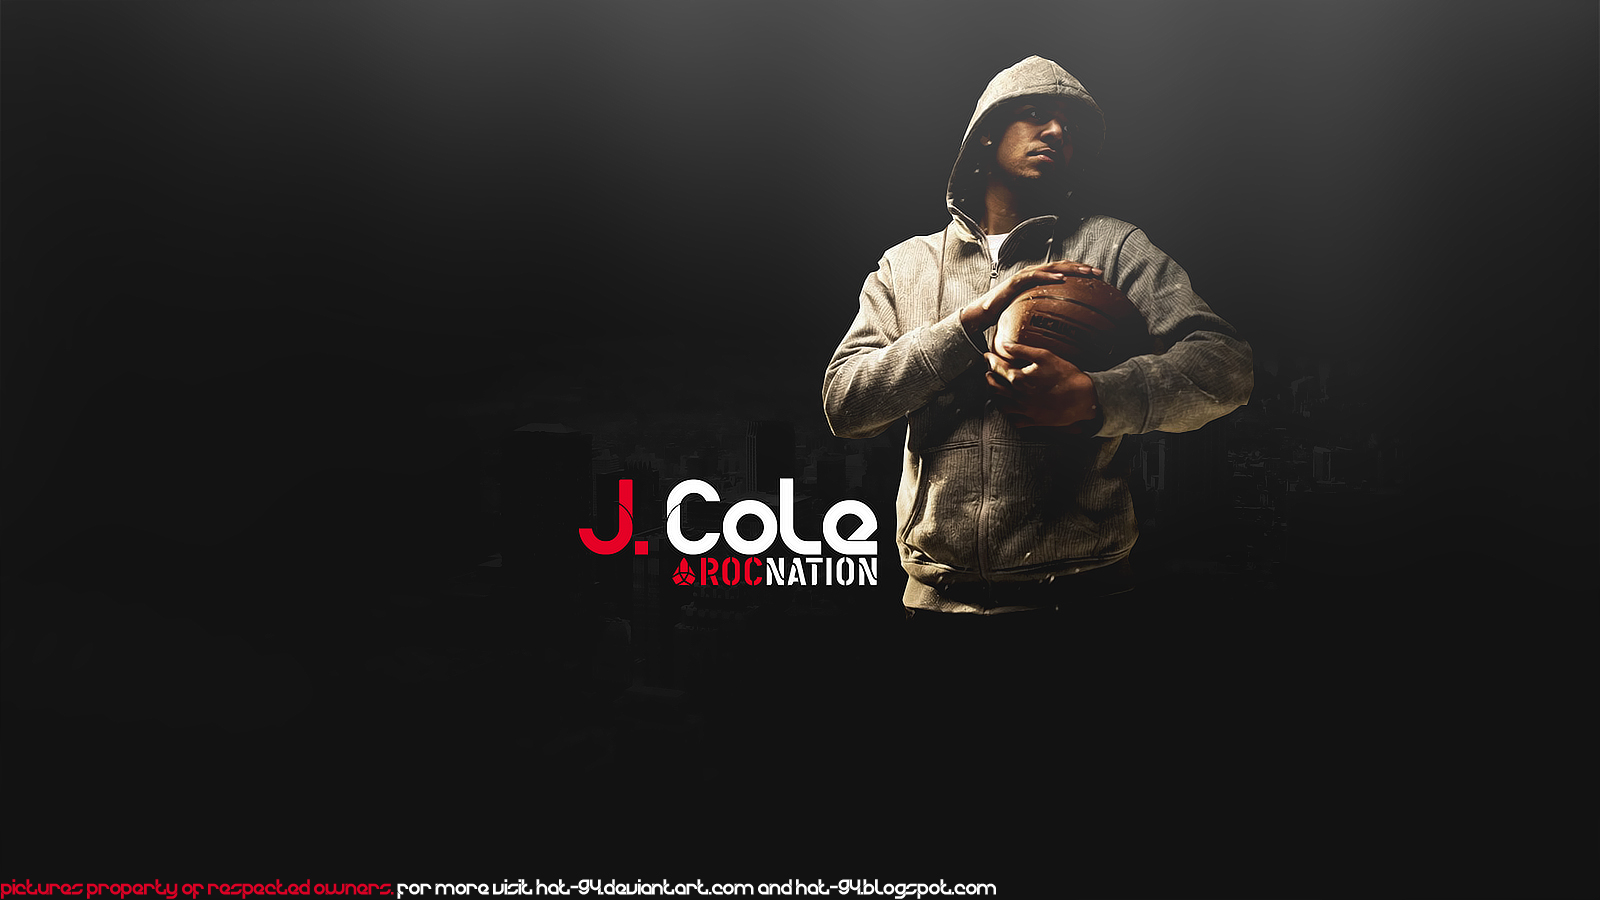 cole wallpaper 4 by hat 94 customization wallpaper people males 1600x900